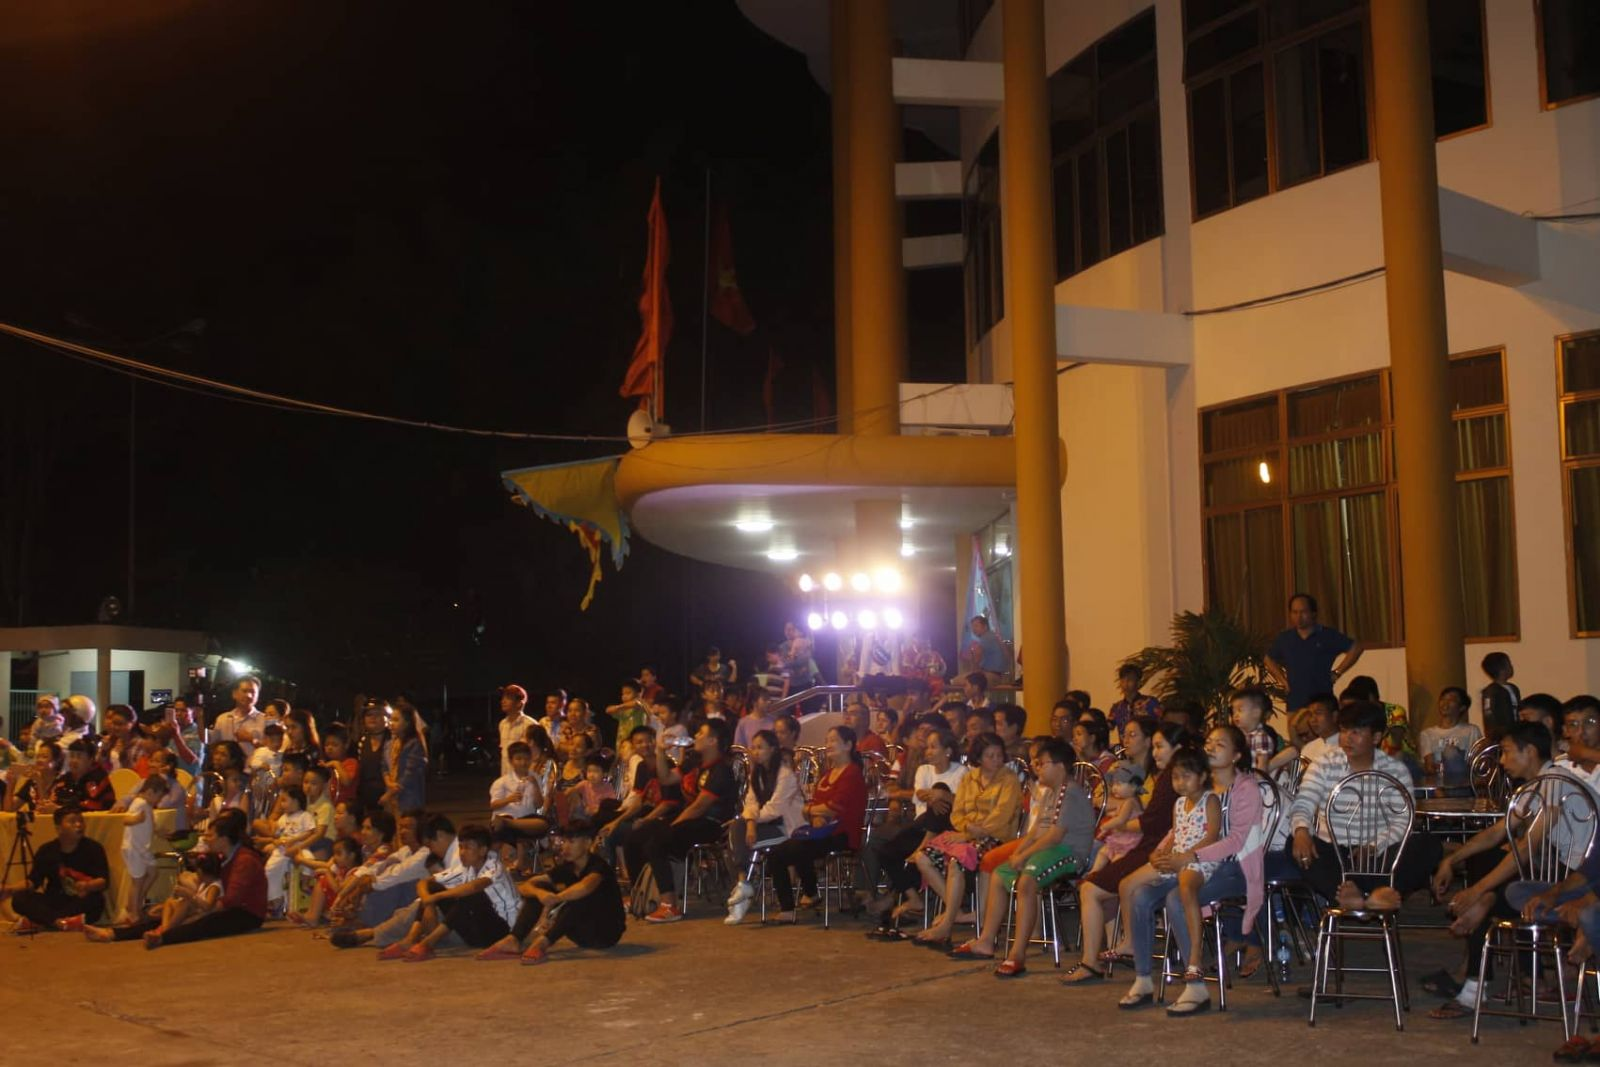 The festival attracted numerous people to watch and cheer